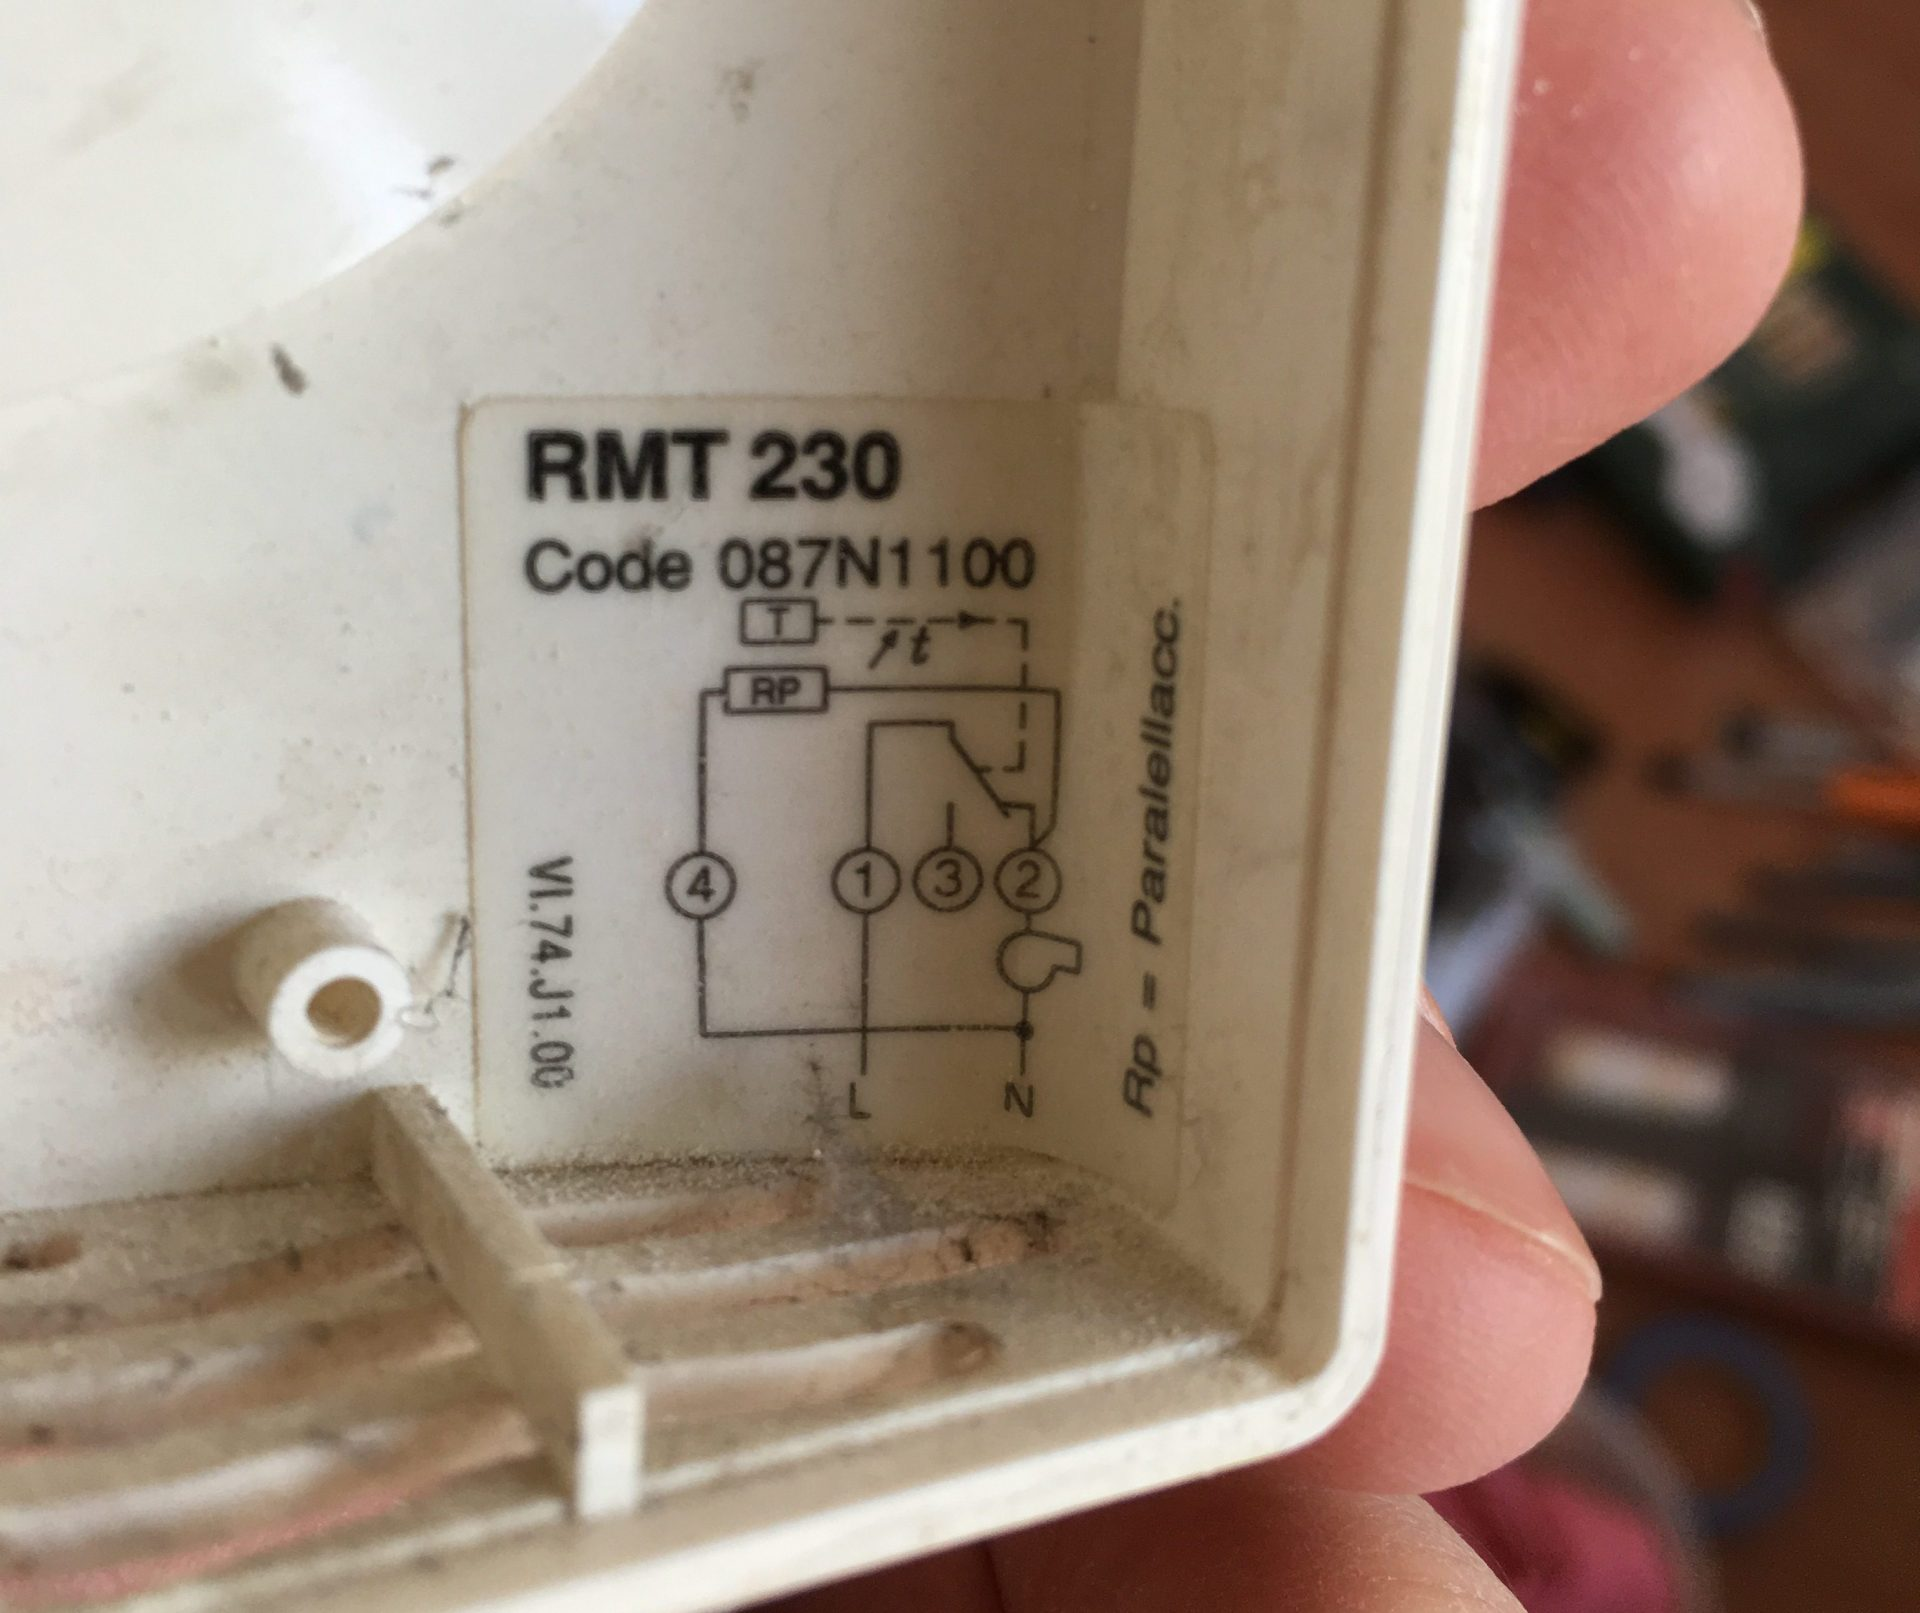 Danfoss Ret230p Wiring Diagram Free Download Y Plan How To Install The Nest Learning Thermostat 3rd Gen In A Single Phase